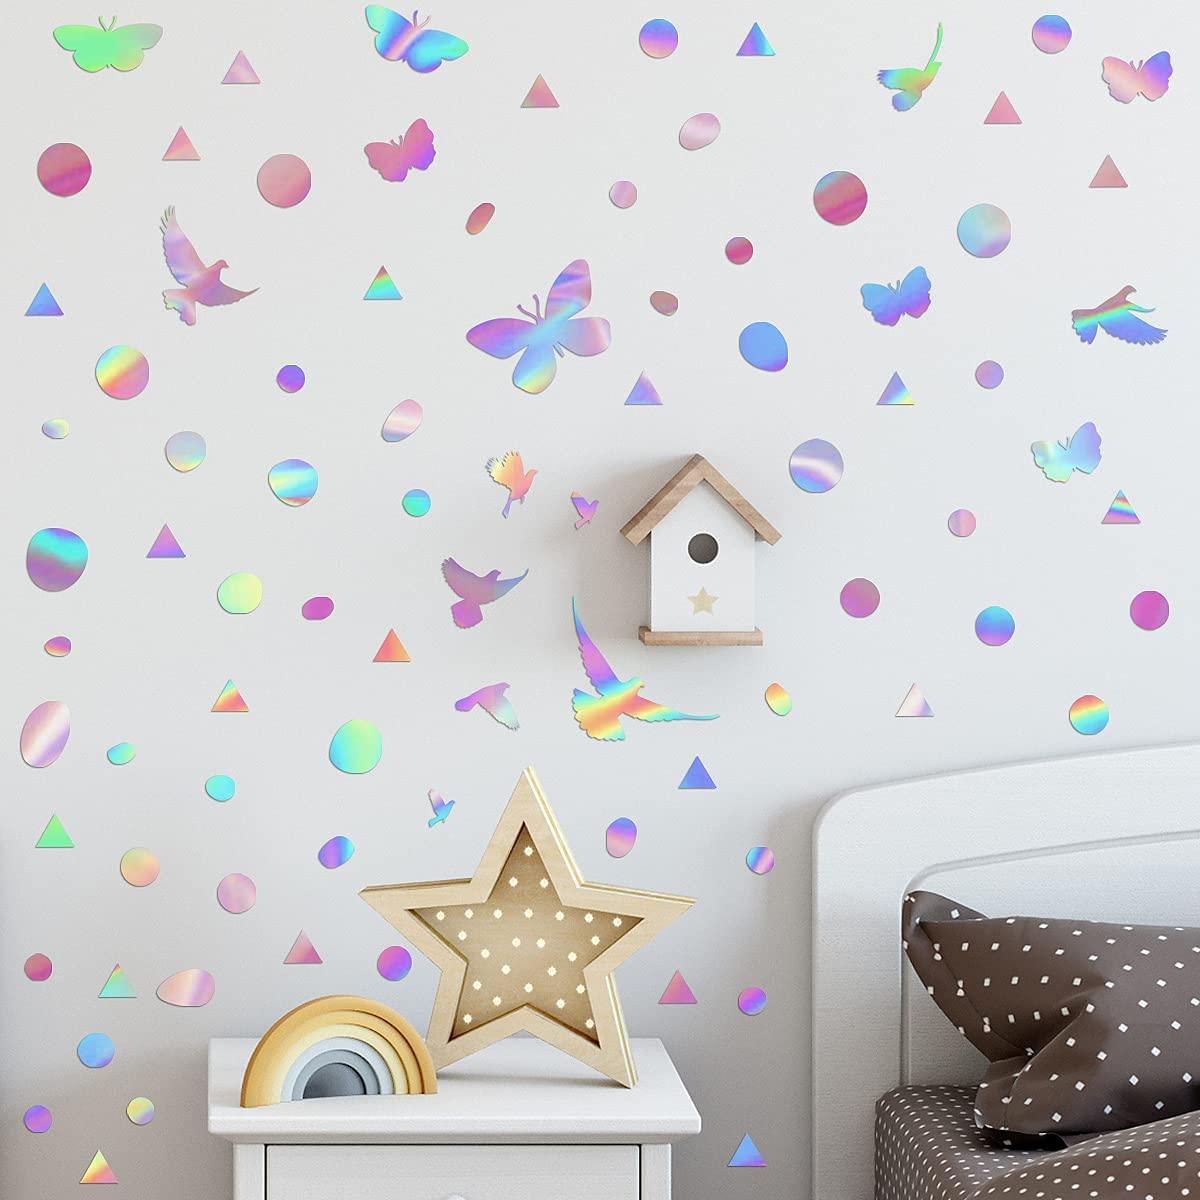 Holographic Film Wall Sticker Laser Rainbow Wall Decal Circle Butterfly Pigeon Triangle DIY Combination Reflective Colorful Home Decoration for Glass Door Window Porch Girl Bedroom Nursery Living Room